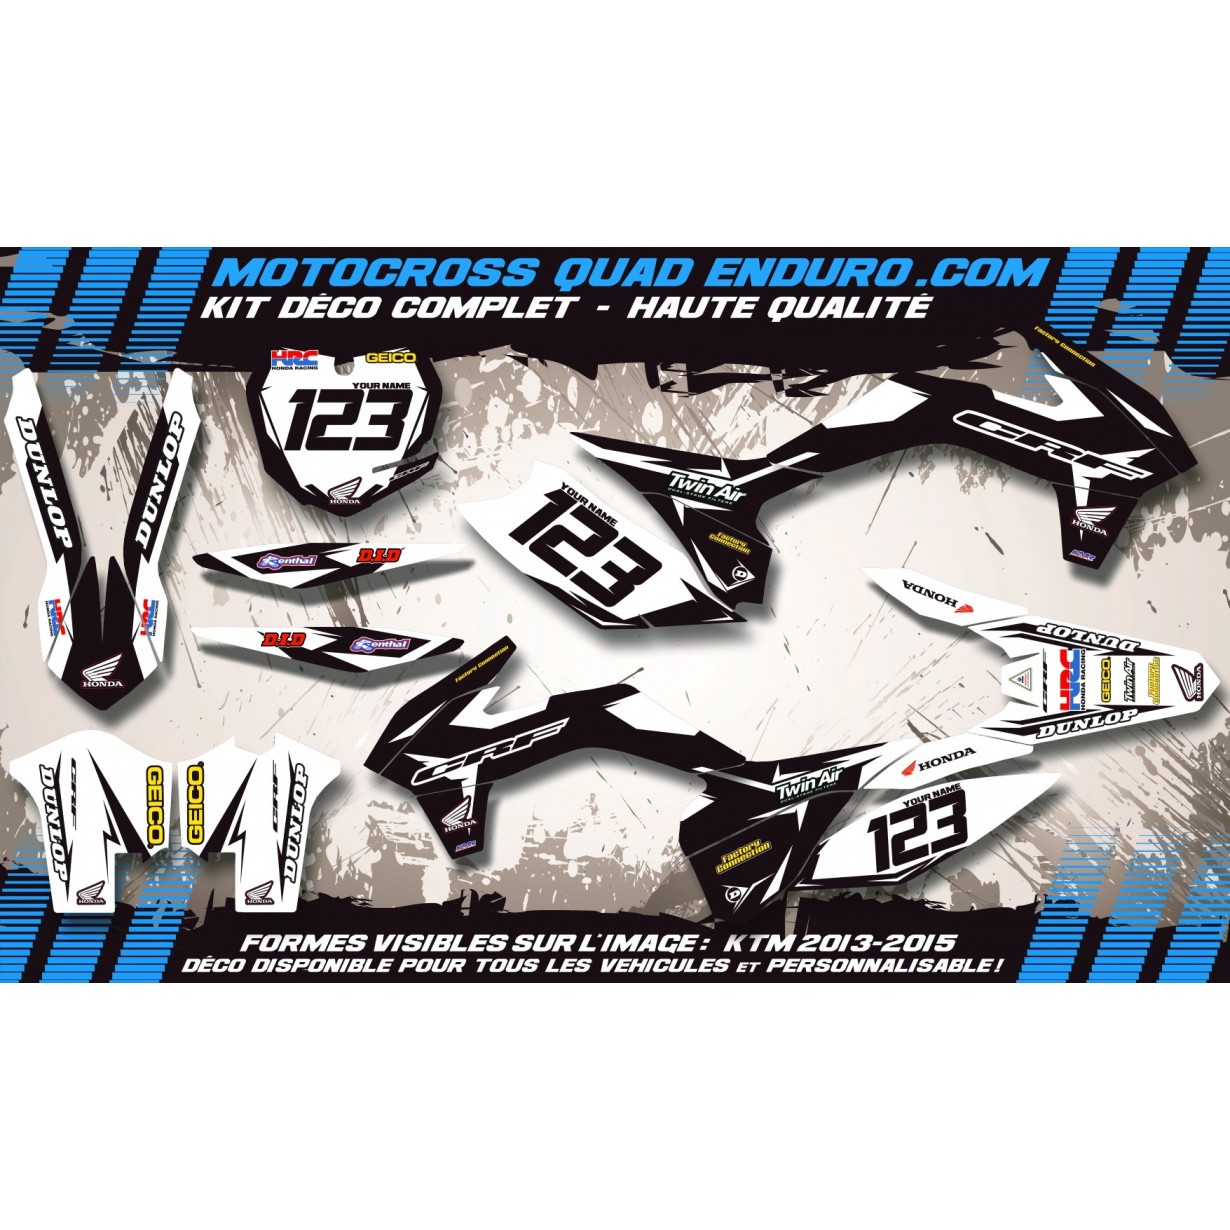 KIT DÉCO Perso 250 CRF-L 13-15 Factory Black Edition MA10AB